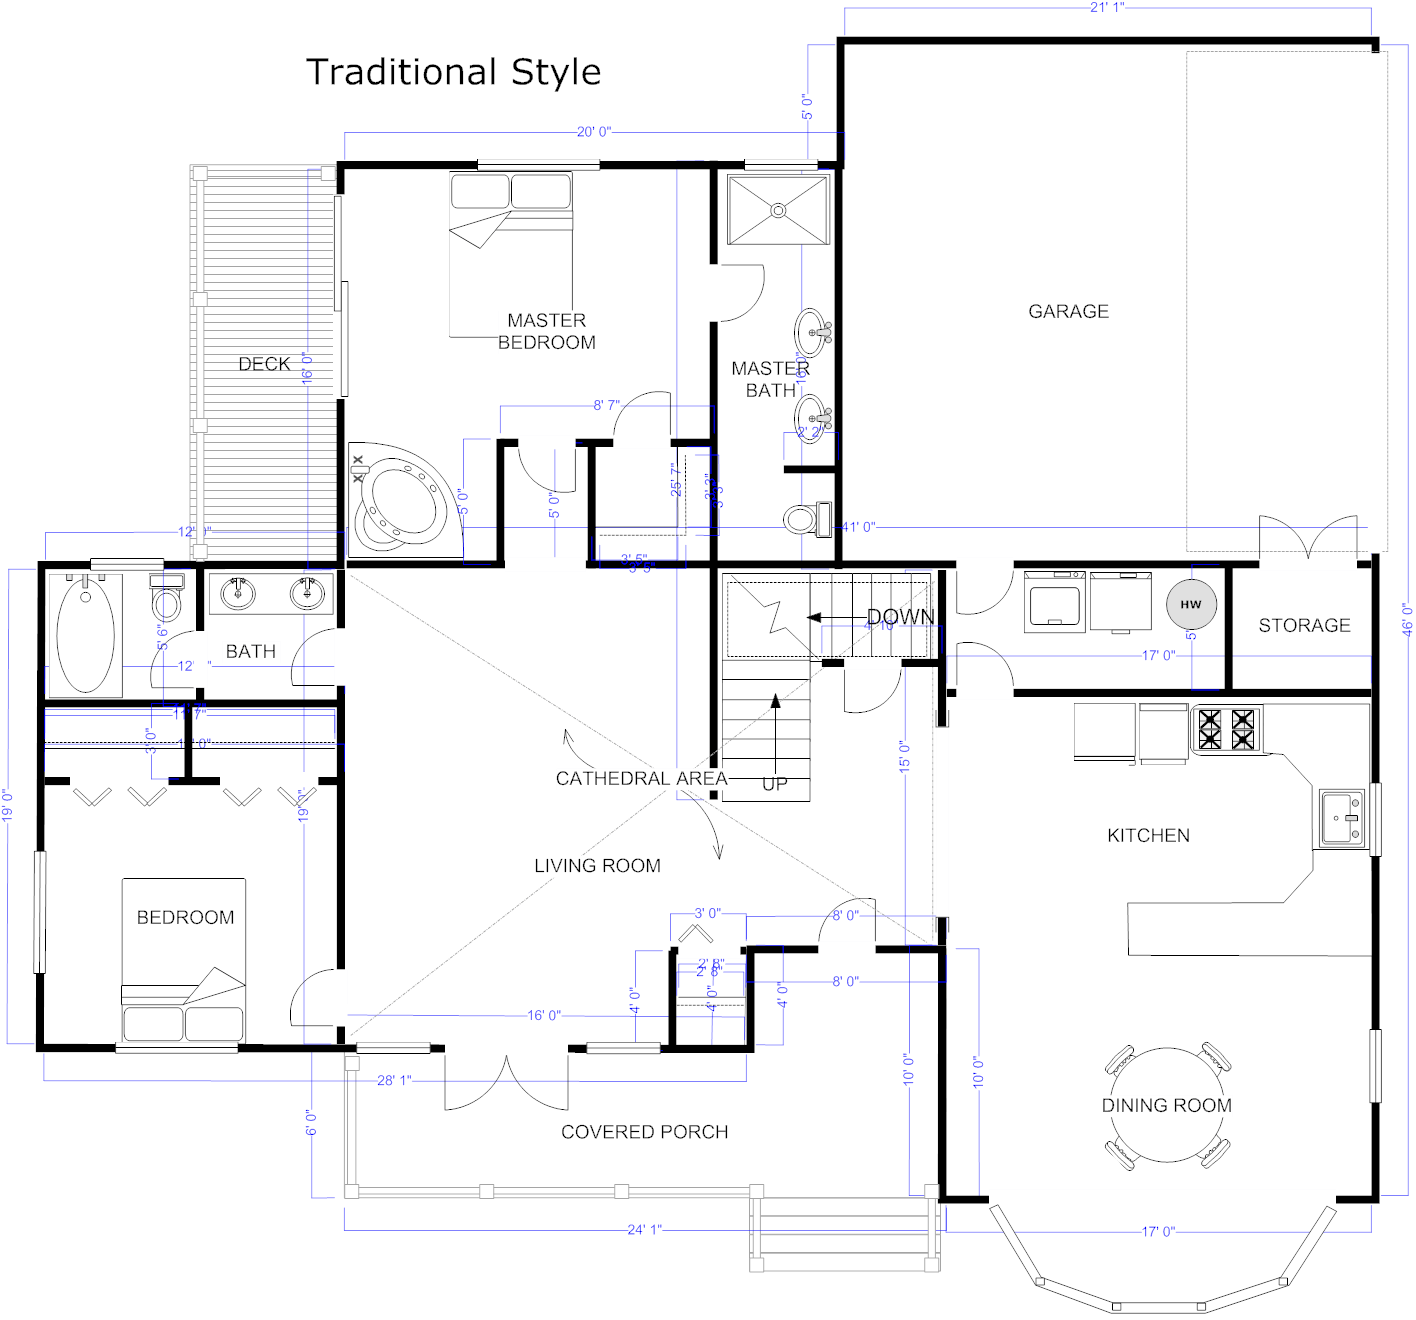 free home design software for ipad castle home house design example bn 1510011072 best floor plan app for ipad your